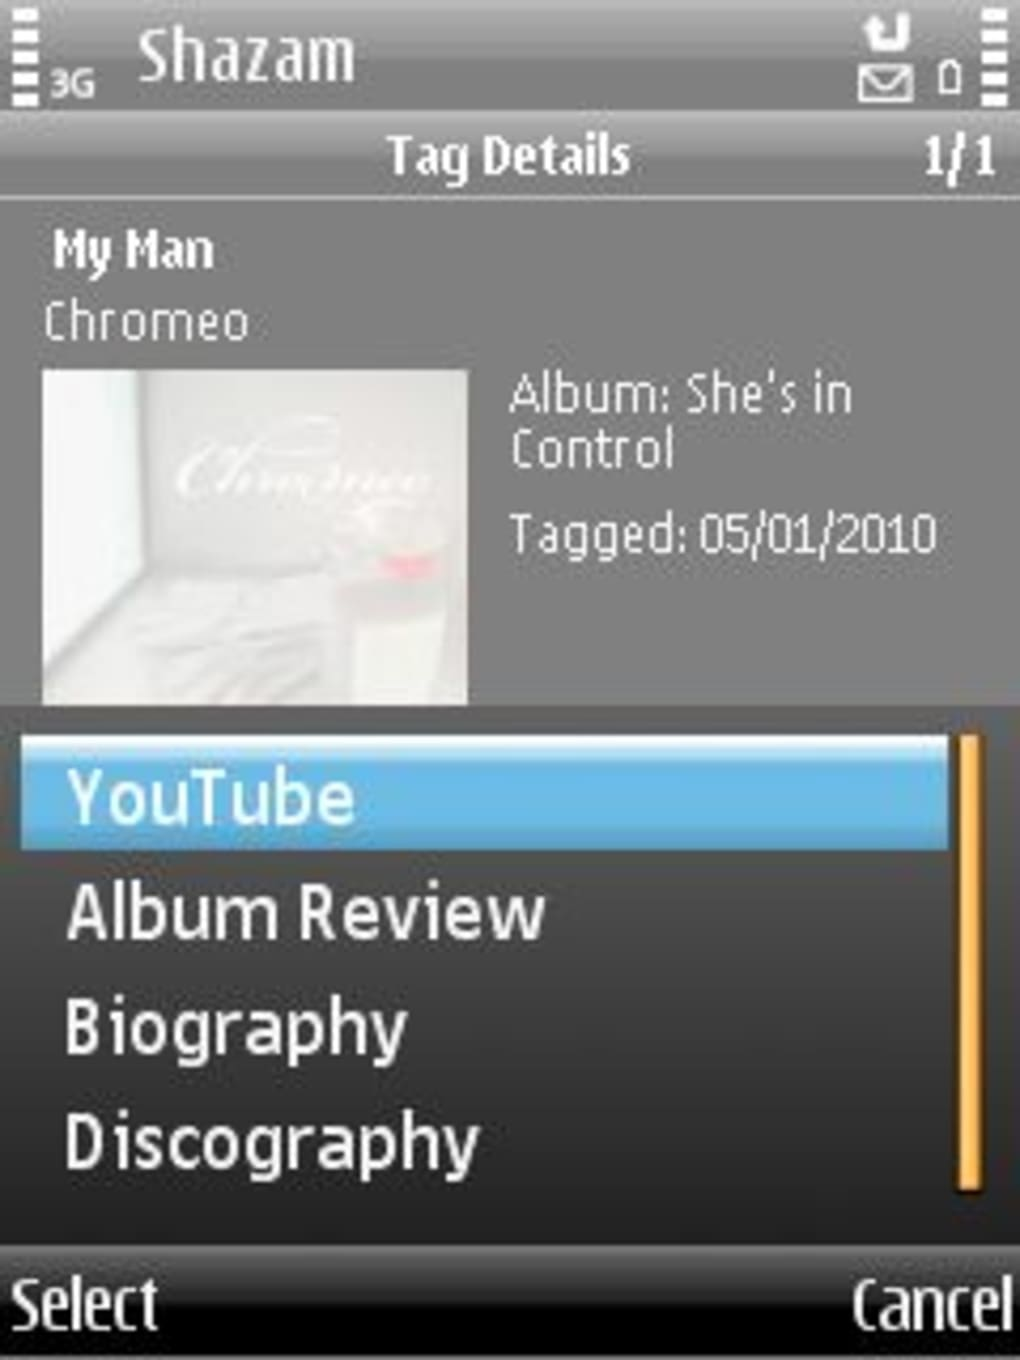 Shazam for symbian download.